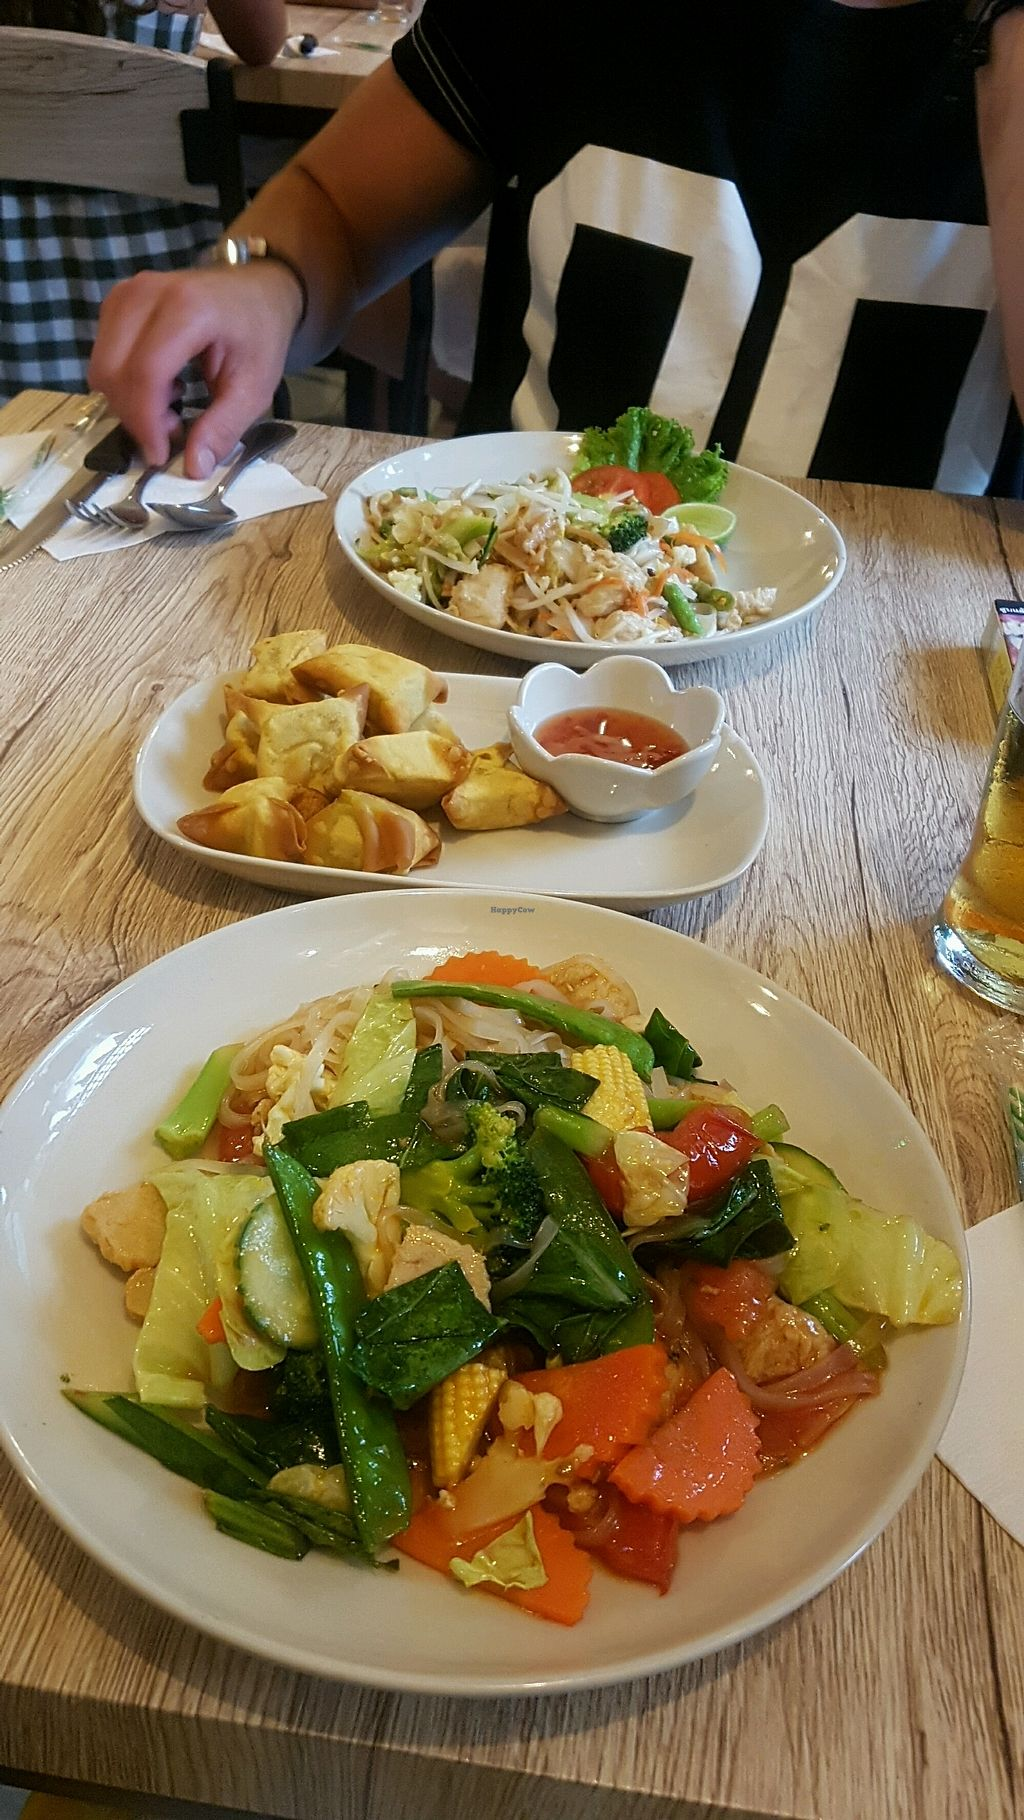 """Photo of Dow Vegetarian Restaurant  by <a href=""""/members/profile/Lizzylodge"""">Lizzylodge</a> <br/>Sweet and sour and pad thai with chicken  <br/> December 17, 2017  - <a href='/contact/abuse/image/96395/336348'>Report</a>"""